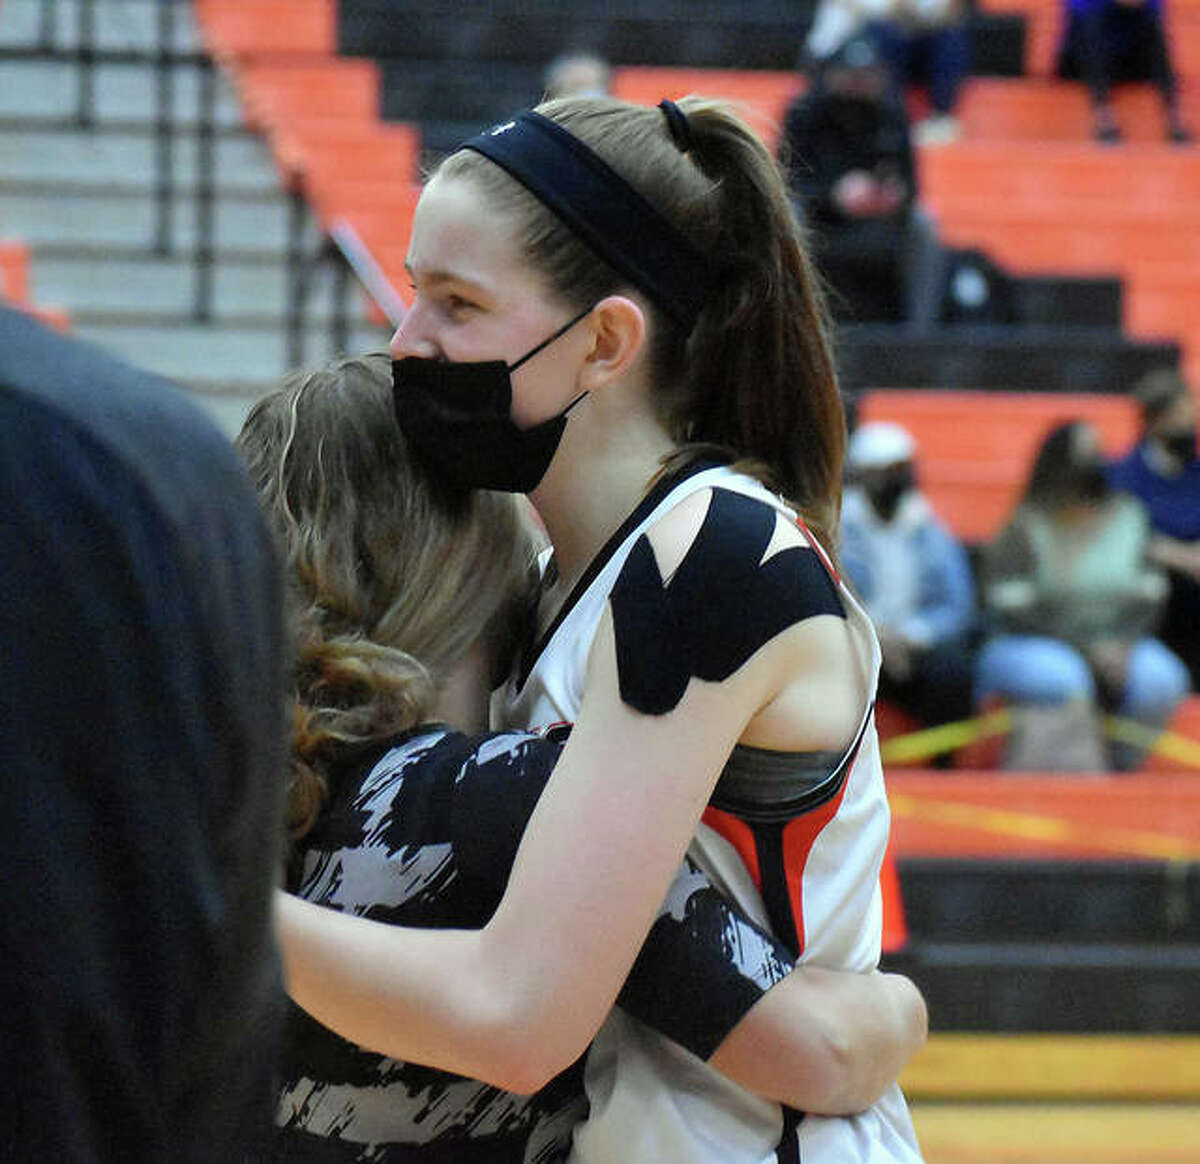 Edwardsville senior center Katelynne Roberts hugs coach Caty Happe after coming out of the game Thursday in her final regular-season home game inside Lucco-Jackson Gymnasium.